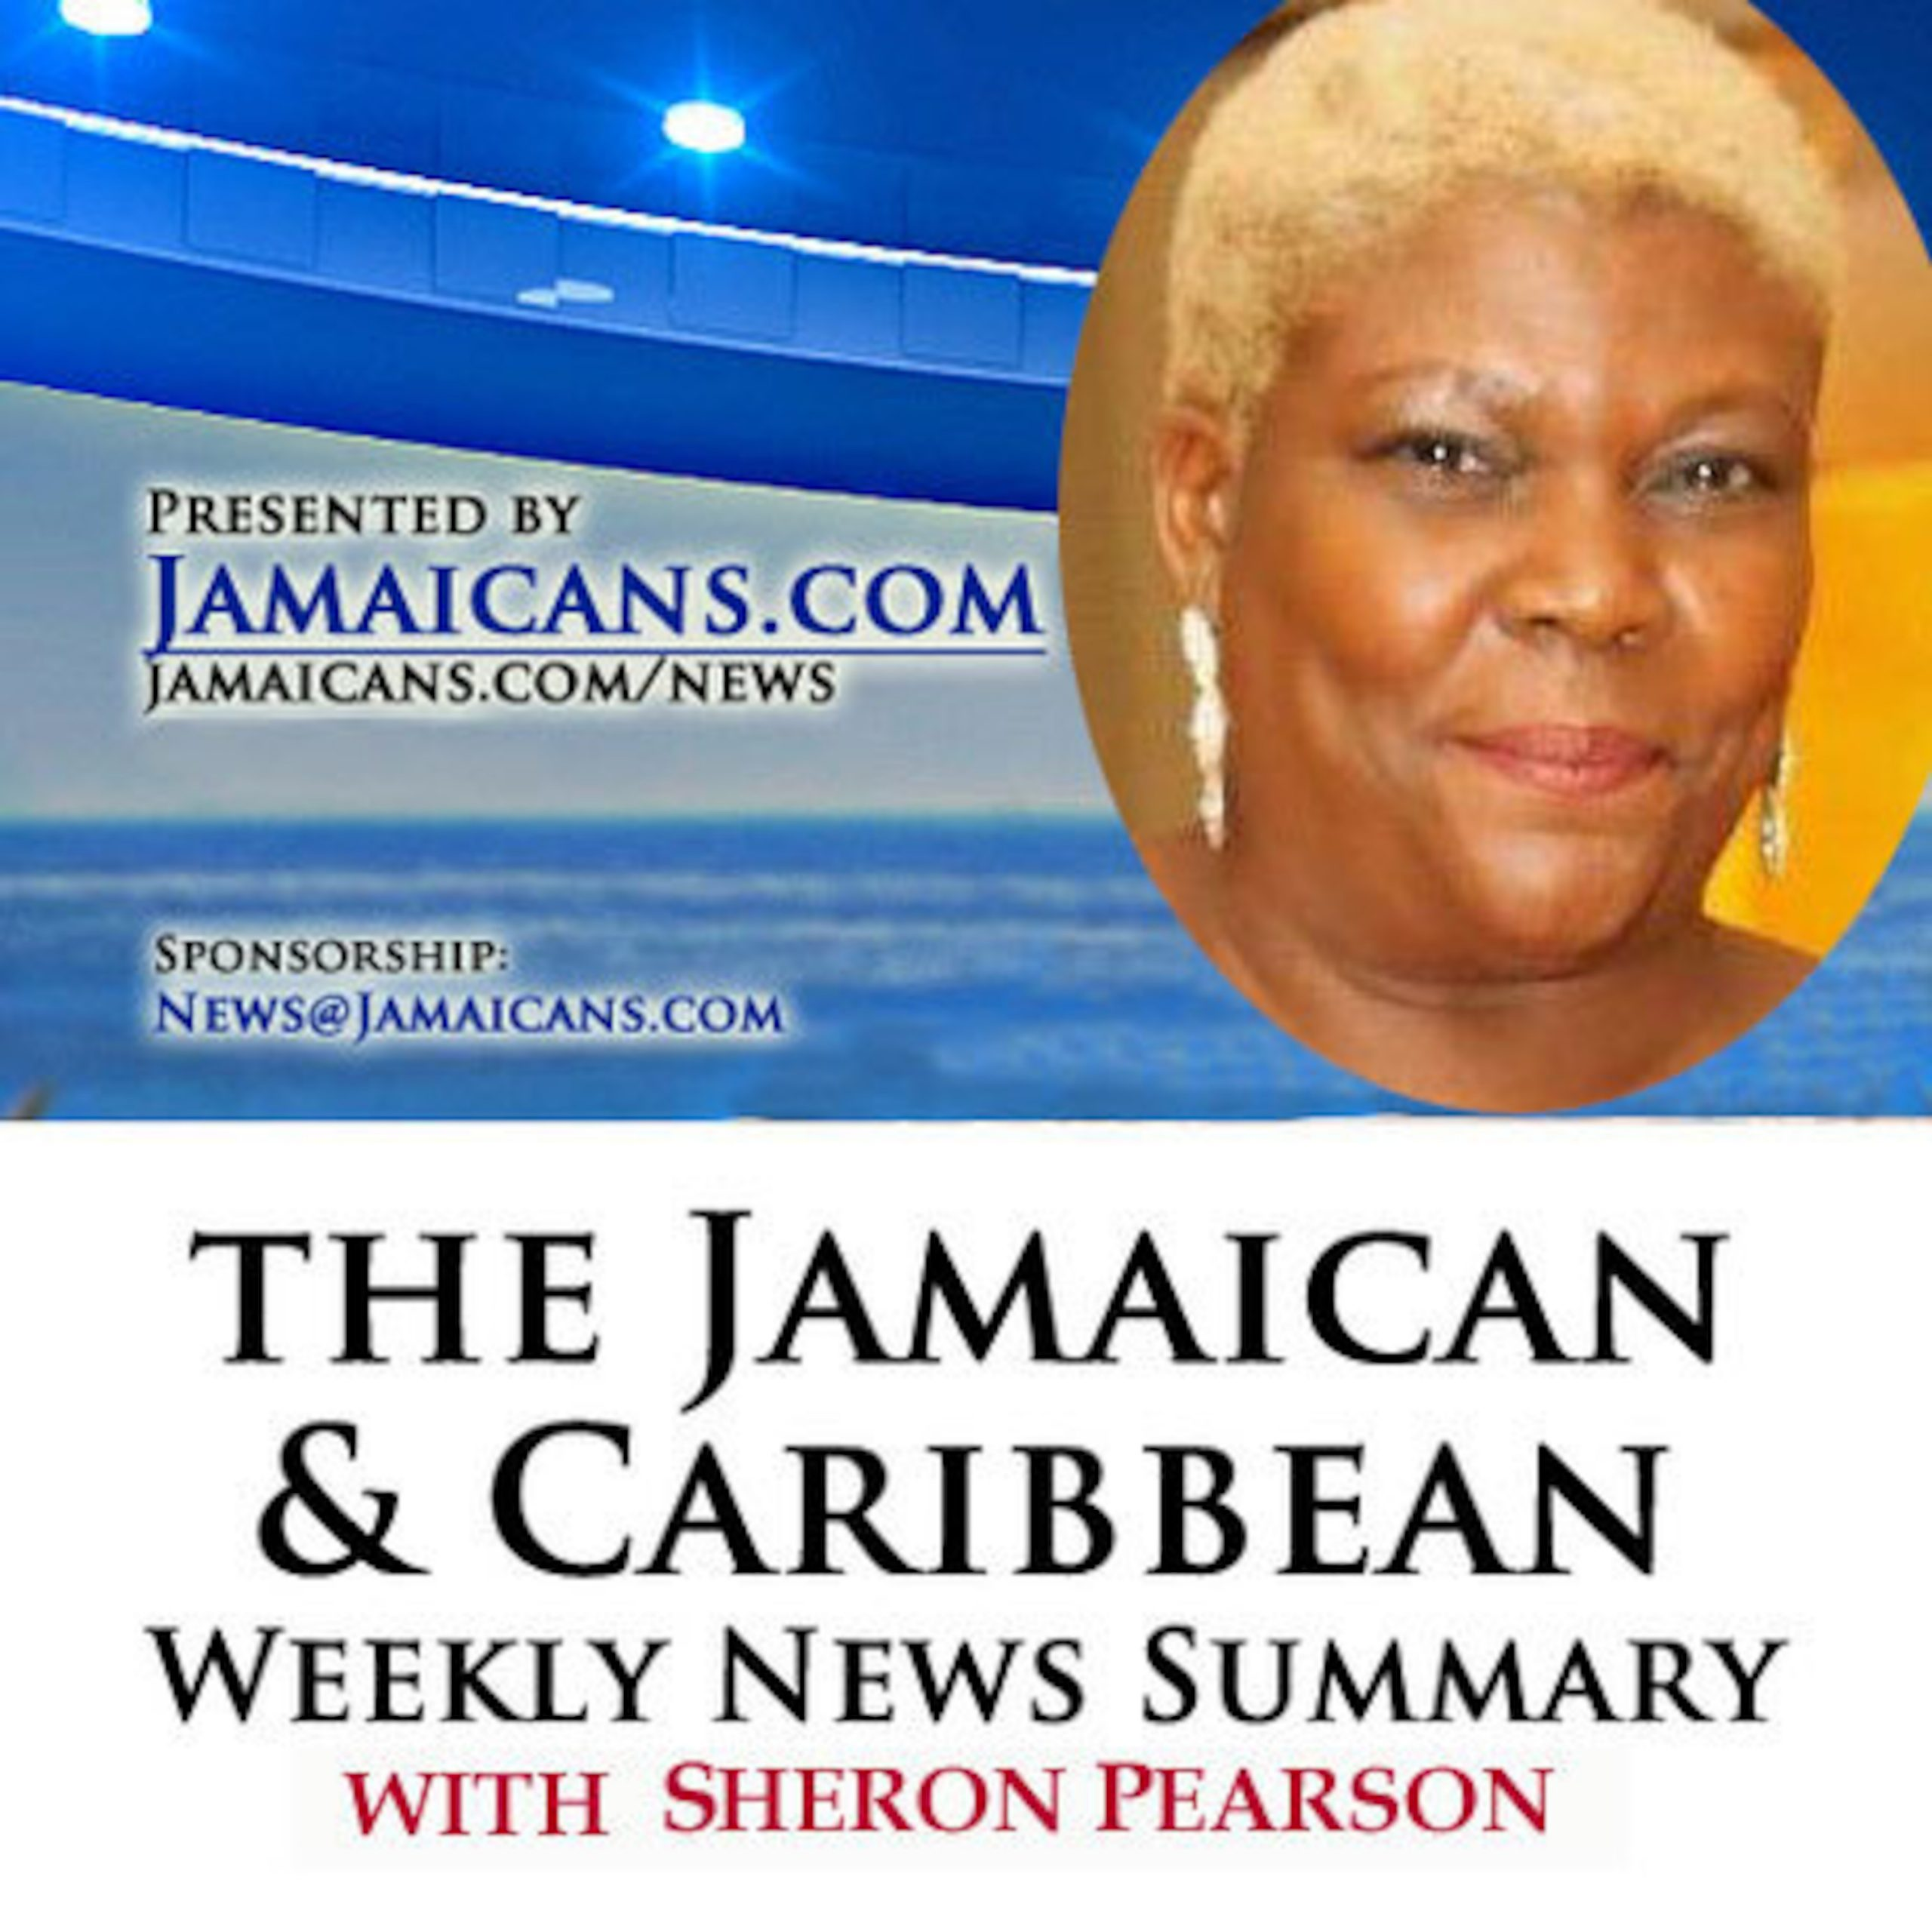 Listen to the Podcast of The Jamaica & Caribbean Weekly News Summary for the week ending July 7, 2020